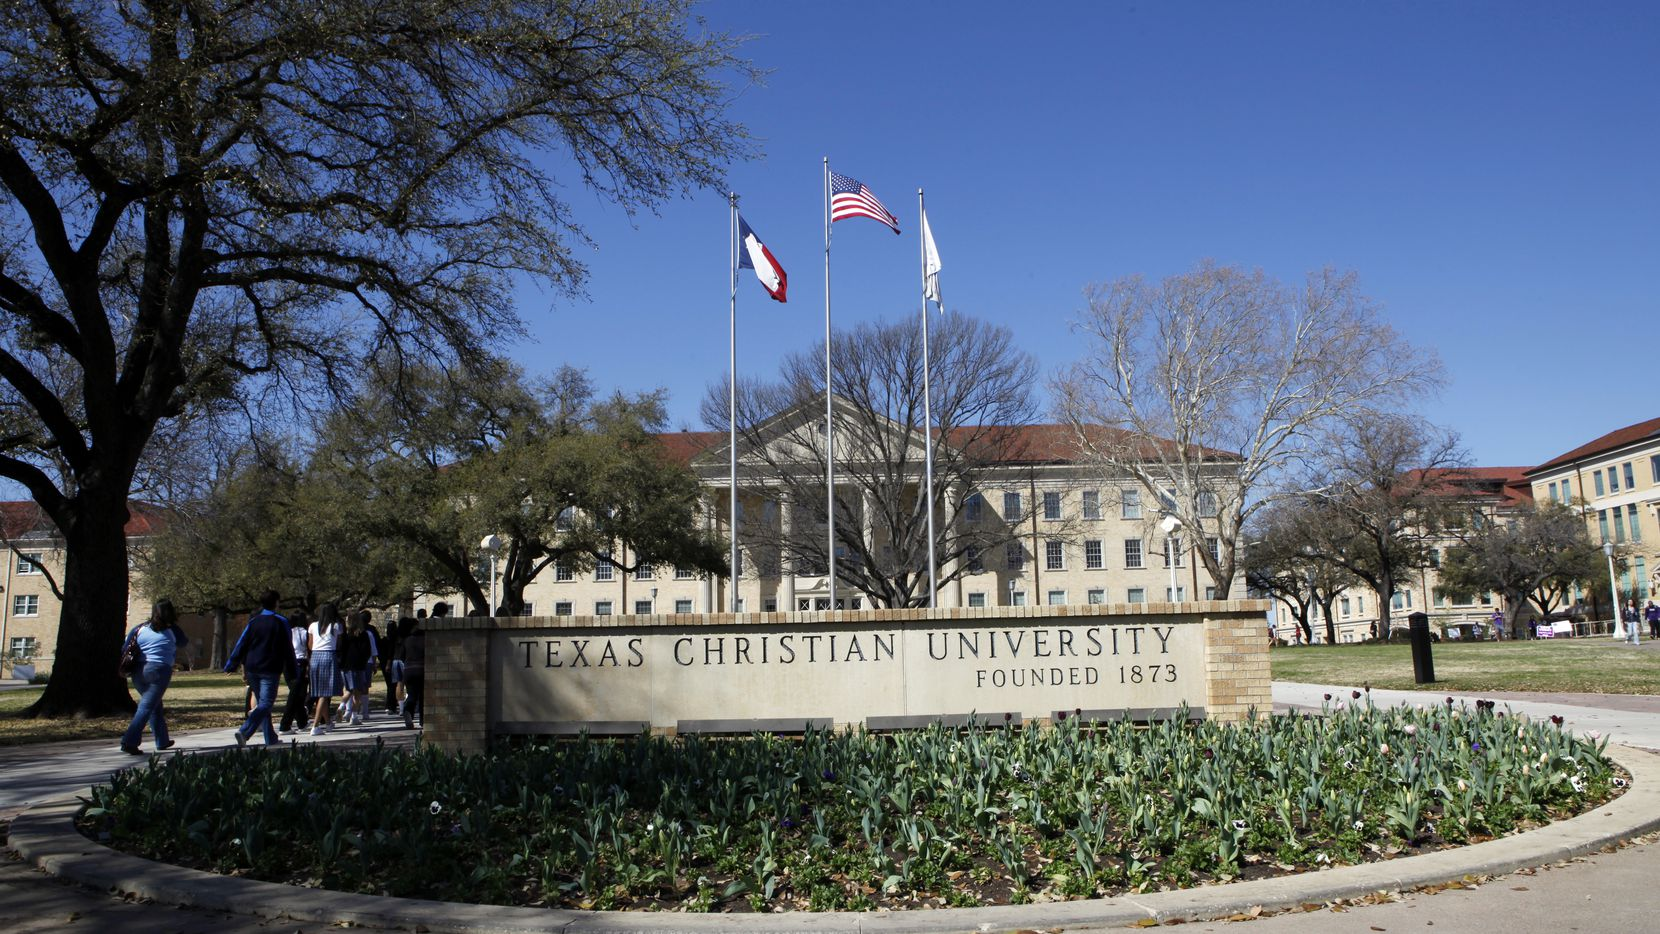 Campus tour groups at Texas Christian University in Fort Worth on Friday, March 11, 2011.